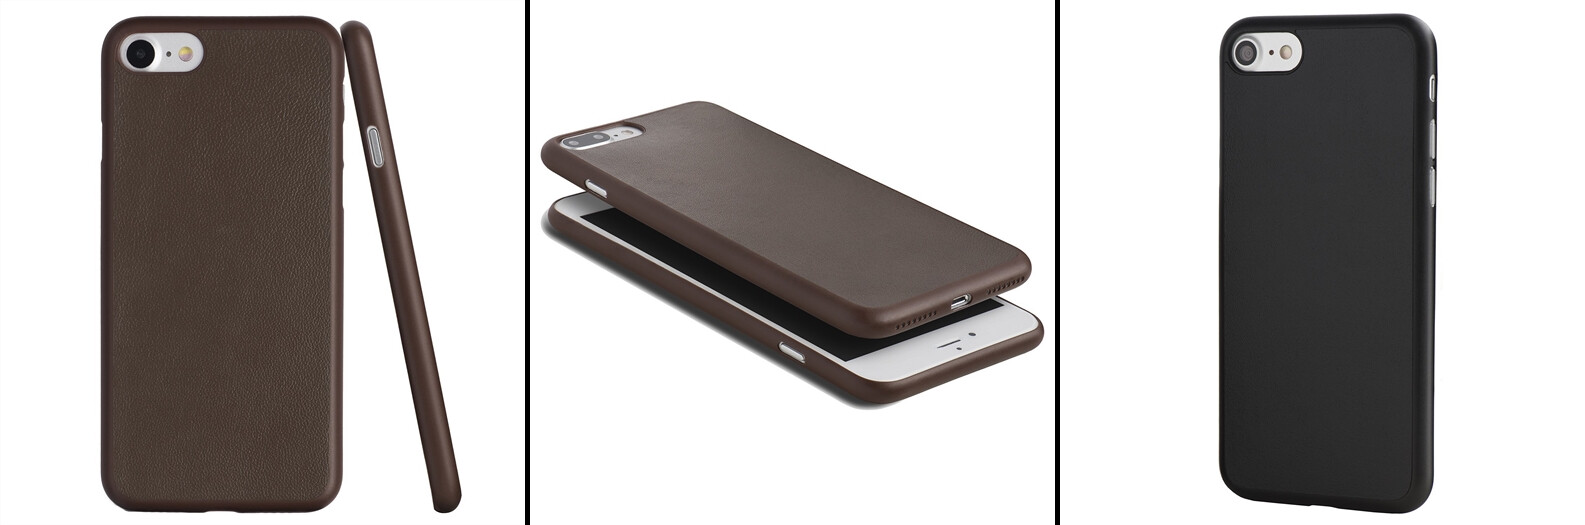 buy popular 5b7e5 d155f The best leather cases for the iPhone 8 and iPhone 8 Plus - PhoneArena